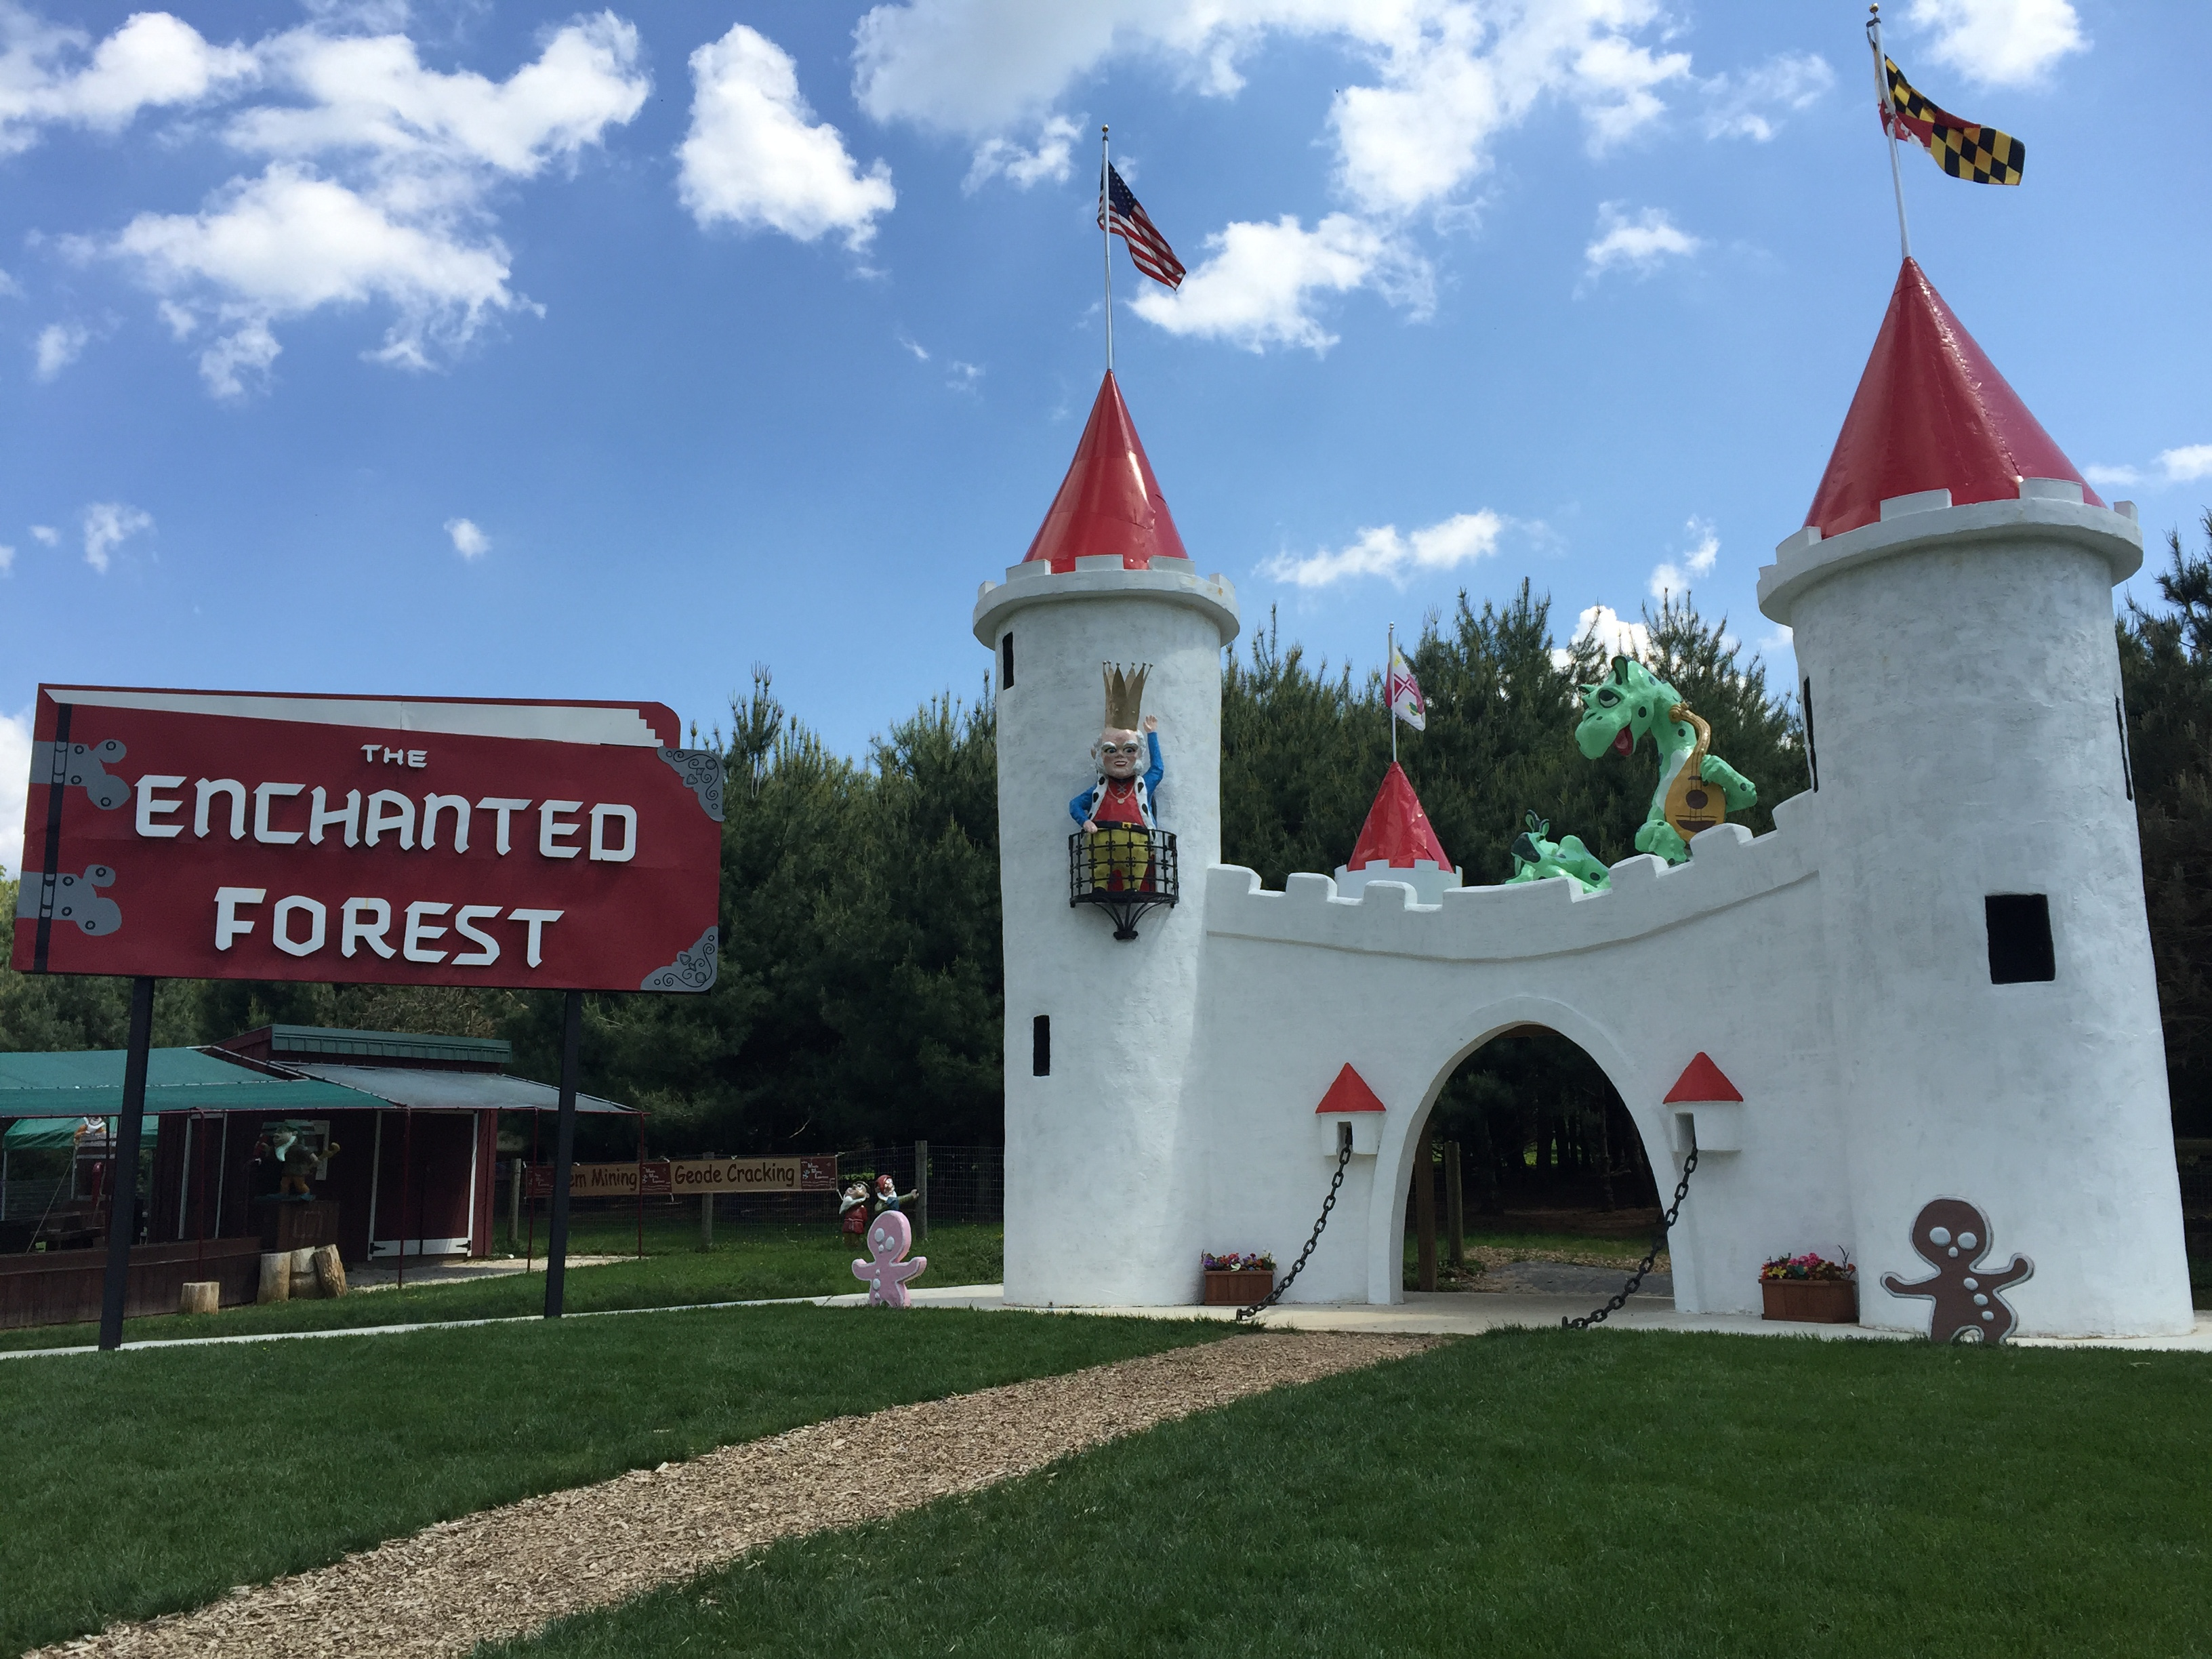 The magic returns to Howard County's Enchanted Forest